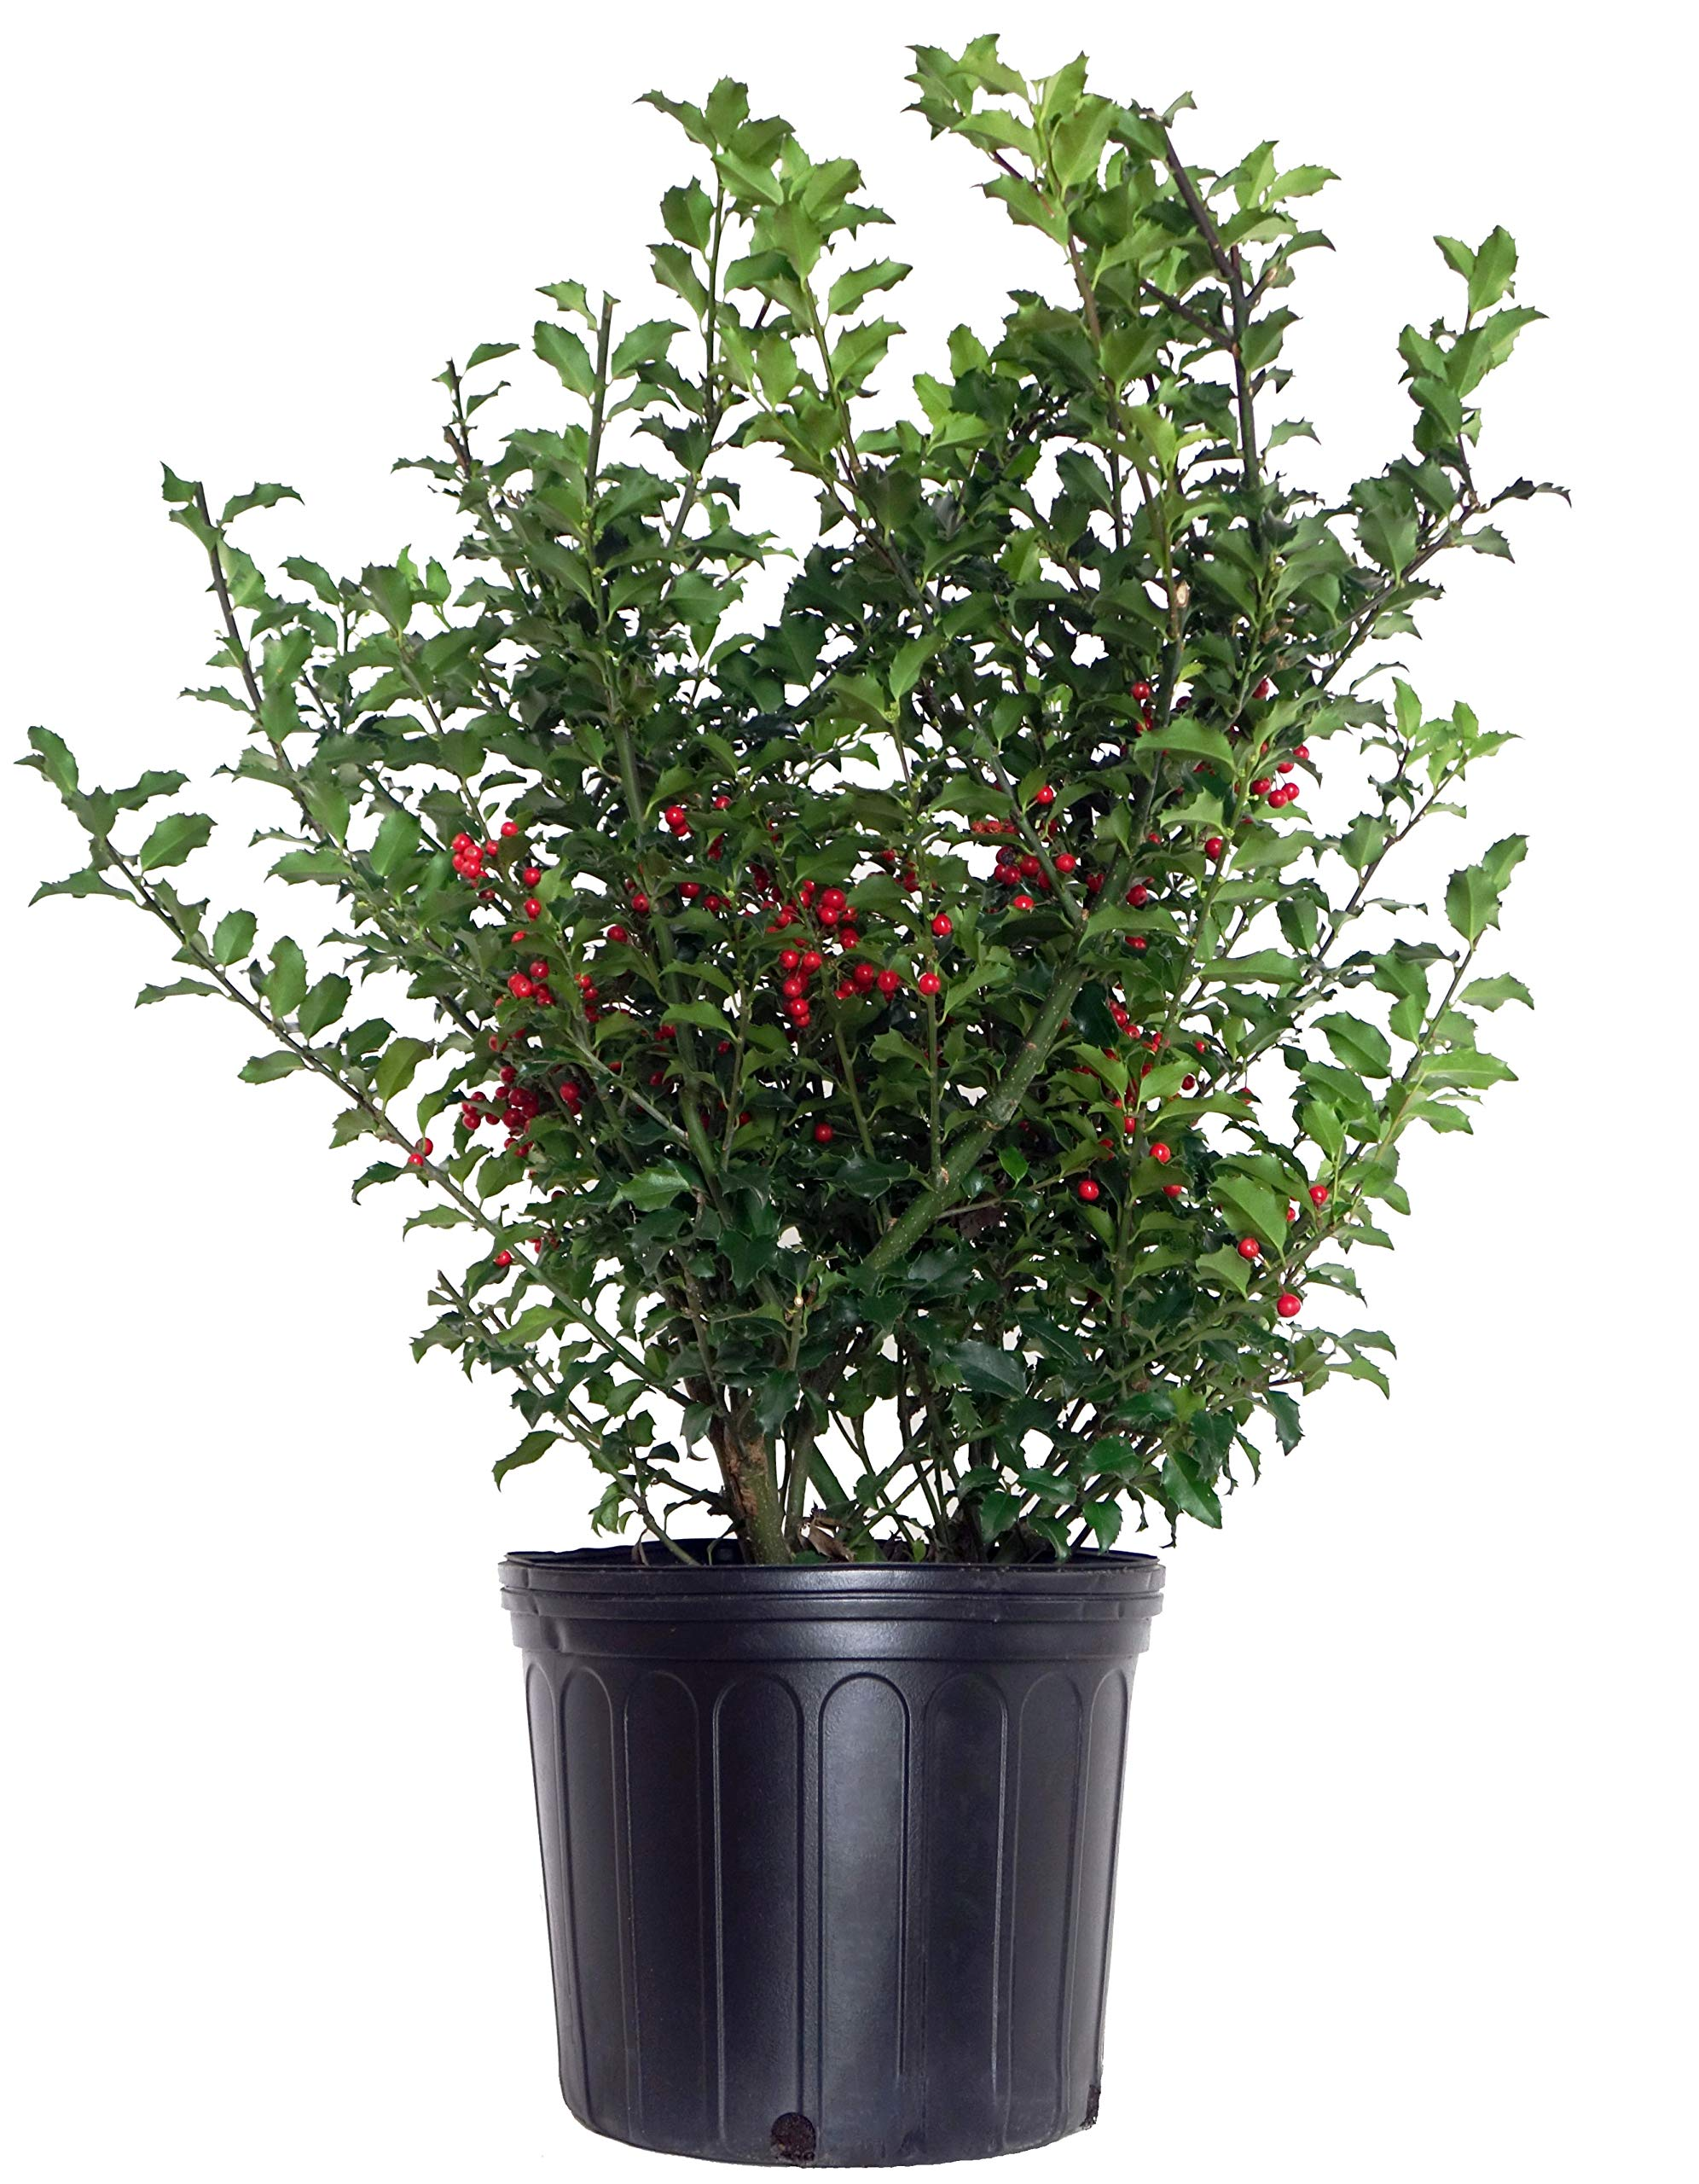 Ilex X meserveae 'Blue Princess' (Blue Holly) Evergreen, #3 - Size Container by Green Promise Farms (Image #1)